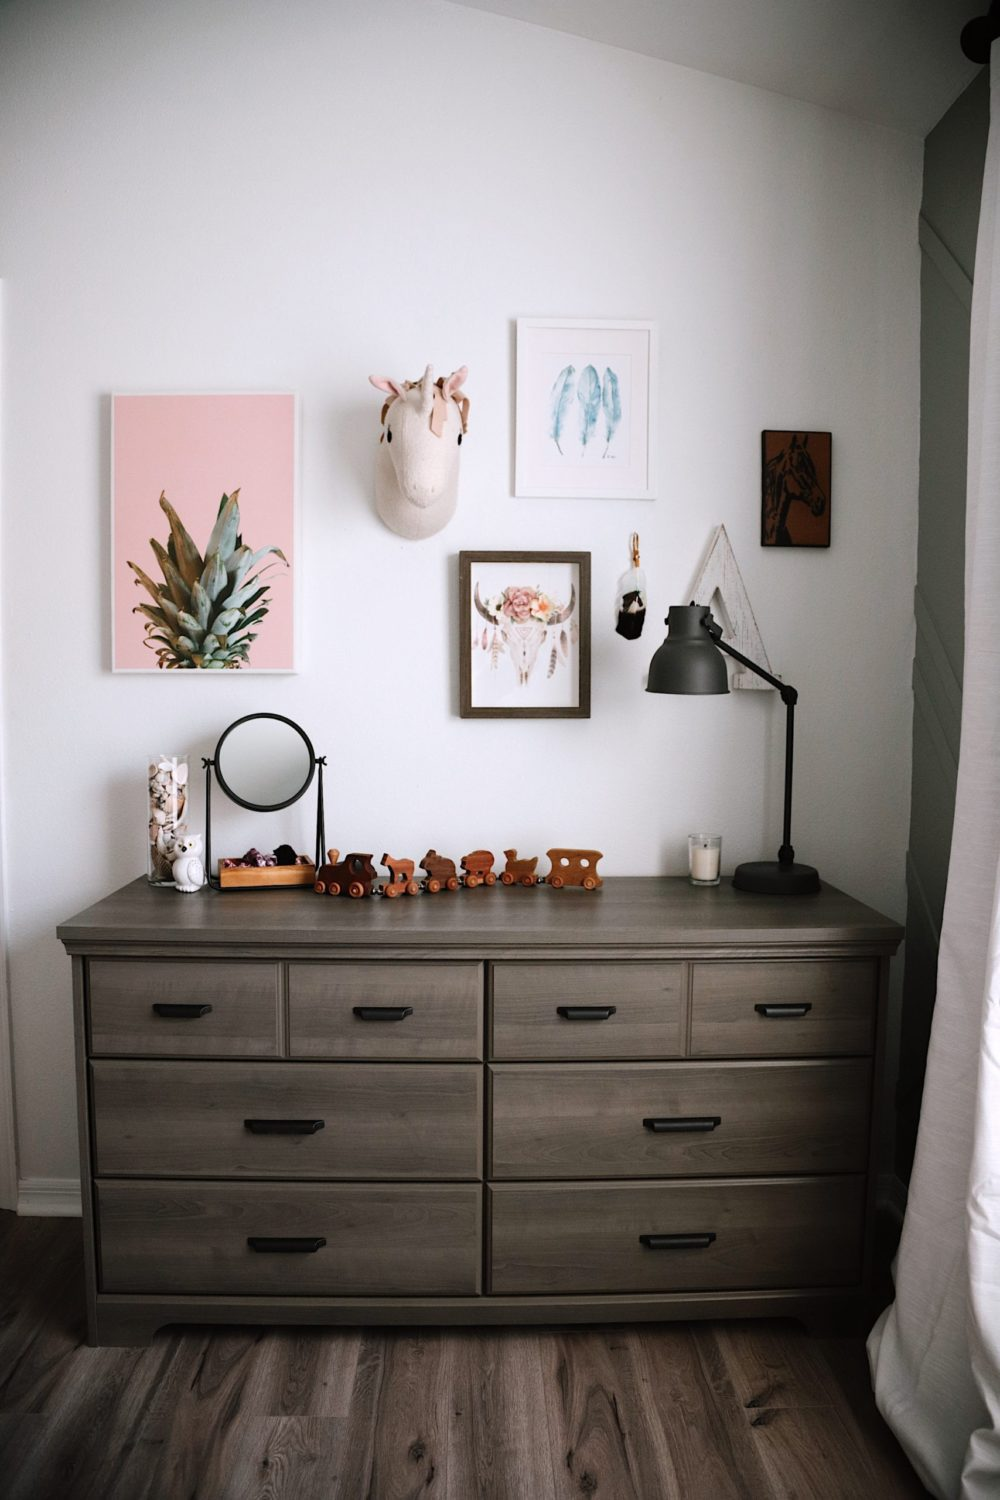 Shared girls' room design with DIY accent wall with one of Valspar's 12 new colors of the year for 2020, Secret Moss. For their 12 shades for 2020, Valspar sought to bring the tranquility of nature into a room to create naturally therapeutic, serene spaces. I love how this dusky moss green (with a hint towards gray) creates a calming escape in our girls' room. We went with one of Valspar's 12 new colors of the year for 2020, Secret Moss. For their 12 shades for 2020, Valspar sought to bring the tranquility of nature into a room to create naturally therapeutic, serene spaces. I love how this dusky moss green (with a hint towards gray) creates a calming escape in our girls' room. We went with one of Valspar's 12 new colors of the year for 2020, Secret Moss. For their 12 shades for 2020, Valspar sought to bring the tranquility of nature into a room to create naturally therapeutic, serene spaces. I love how this dusky moss green (with a hint towards gray) creates a calming escape in our girls' room. | Gorgeous Wood Feature Wall + Shared Girl's Room Update by popular Florida home decor blog, Fresh Mommy Blog: image of a shared girls' room decorated with a Lowe's South Shore Furniture Versa Gray Maple 6-Drawer Double Dresser, Lowe's LEVOLOR Trim+Go Shadow Light Filtering Cordless Solar Shade, Lowe's allen + roth 2-Pack Black Curtain Rod Finials, Lowe's Paint Paints & Primers Paint Samples Item # 1185292 Model # 5005-2A Valspar Secret Moss Interior Paint, Lowe's DAP DryDex 8-oz White Spackling, Lowe's allen + roth Matte Black 72-in To 144-in Matte Black Steel Single Curtain Rod, and Lowe's allen + roth LL WARWICK 42-IN x 84-IN TAUP PNL 84-in Taupe Polyester Blackout Thermal Lined Single Curtain Panel.